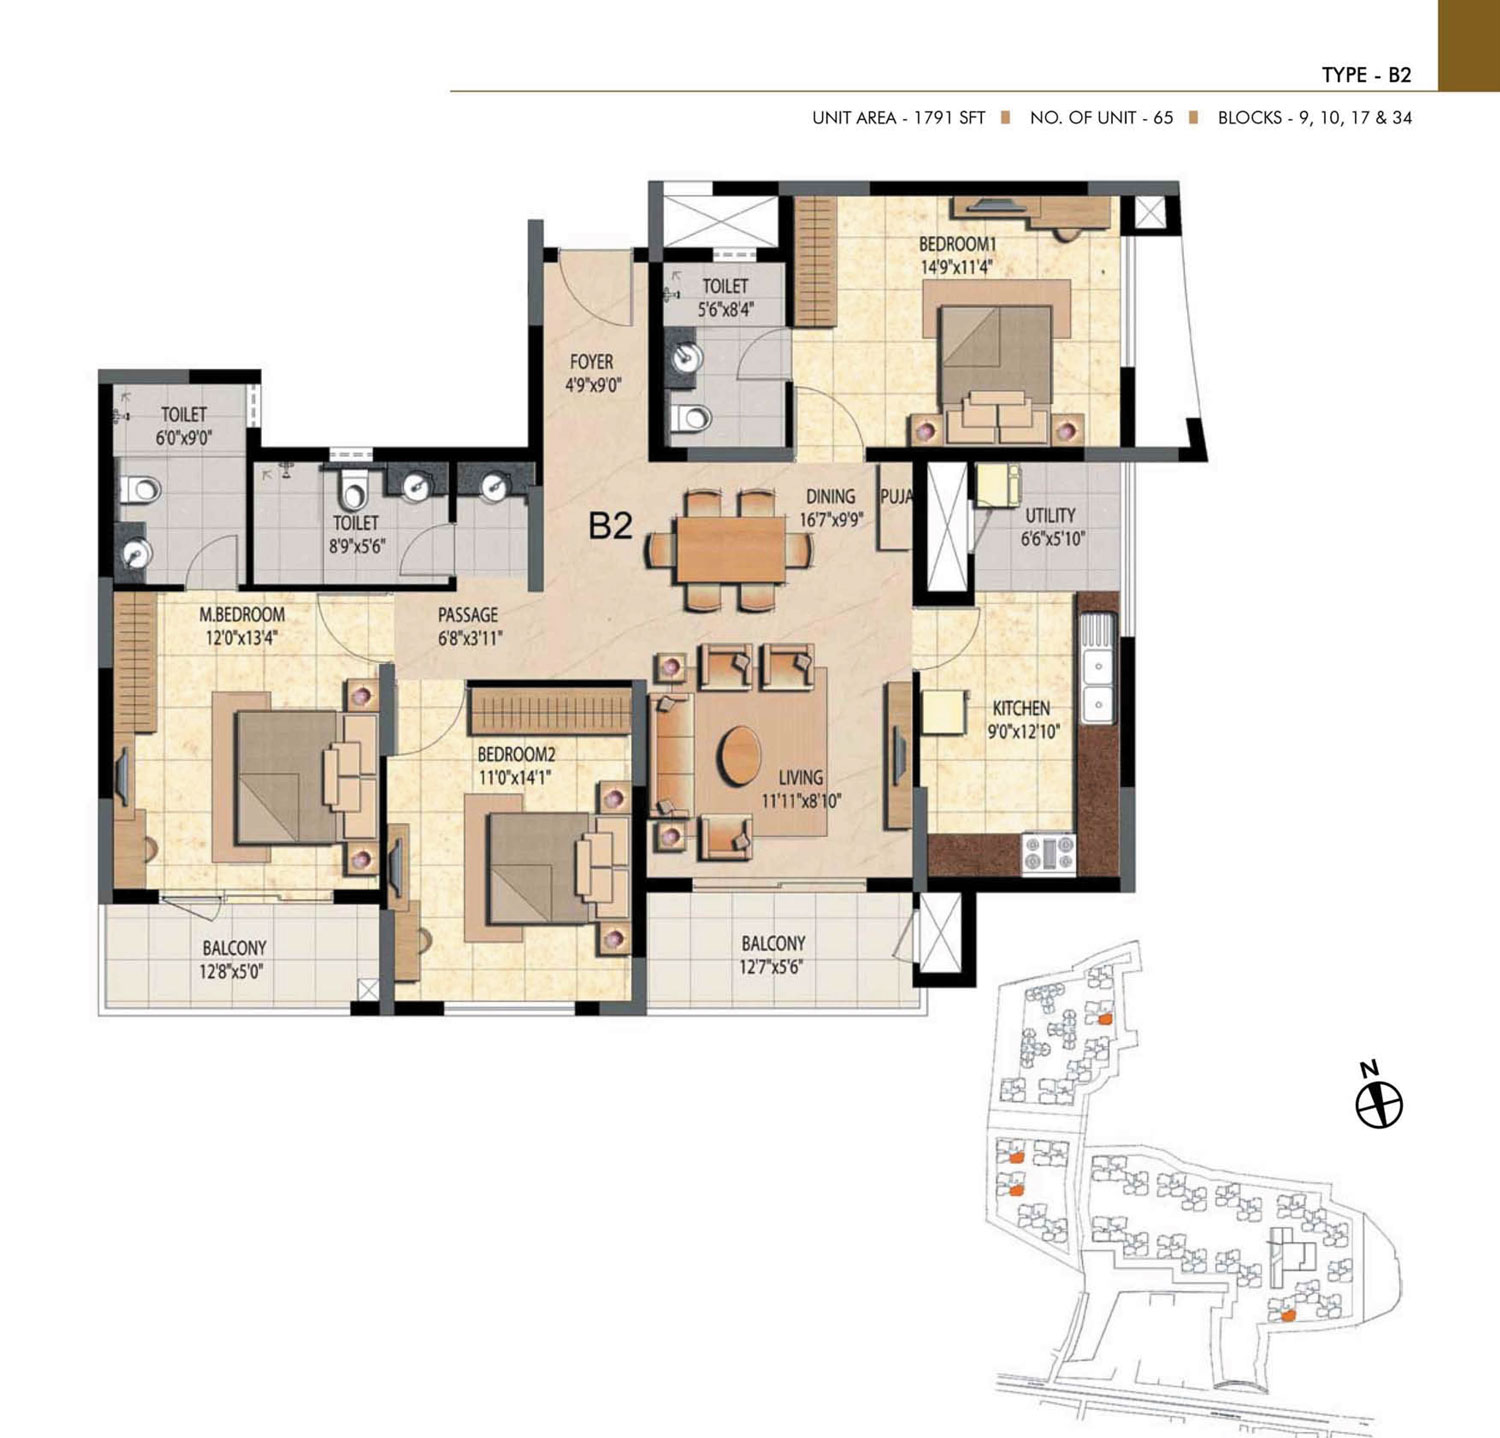 Type B2 - 2 Bed - 1791 Sq Ft